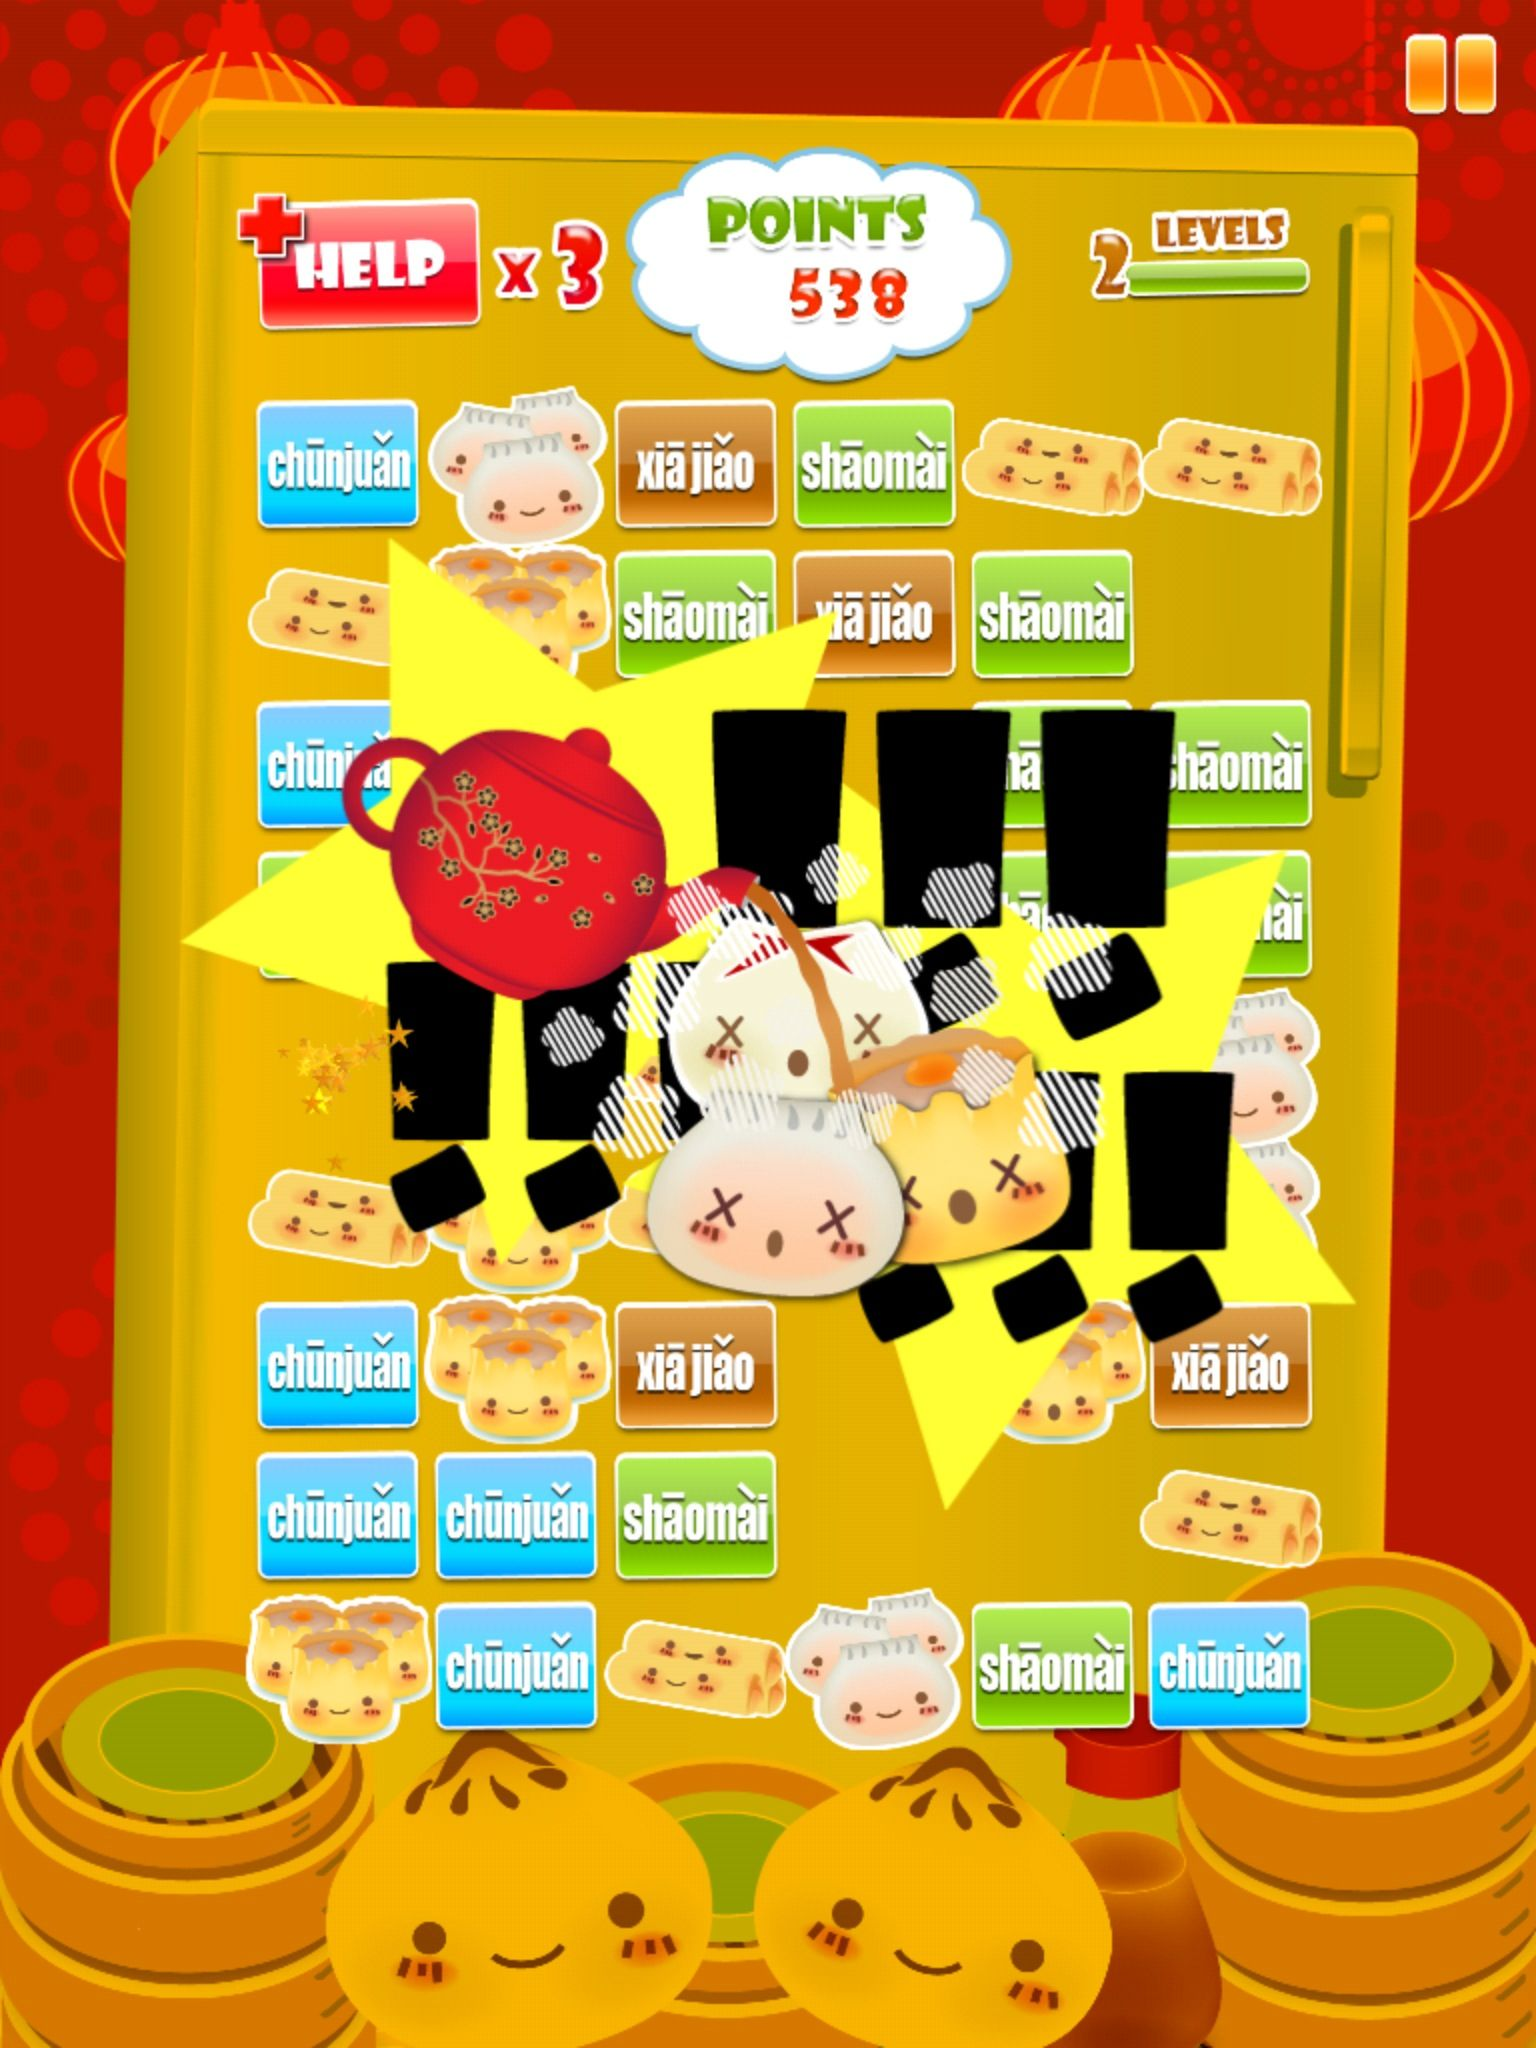 Chinese Fridge Dim Sum helps kids learn Chinese with some